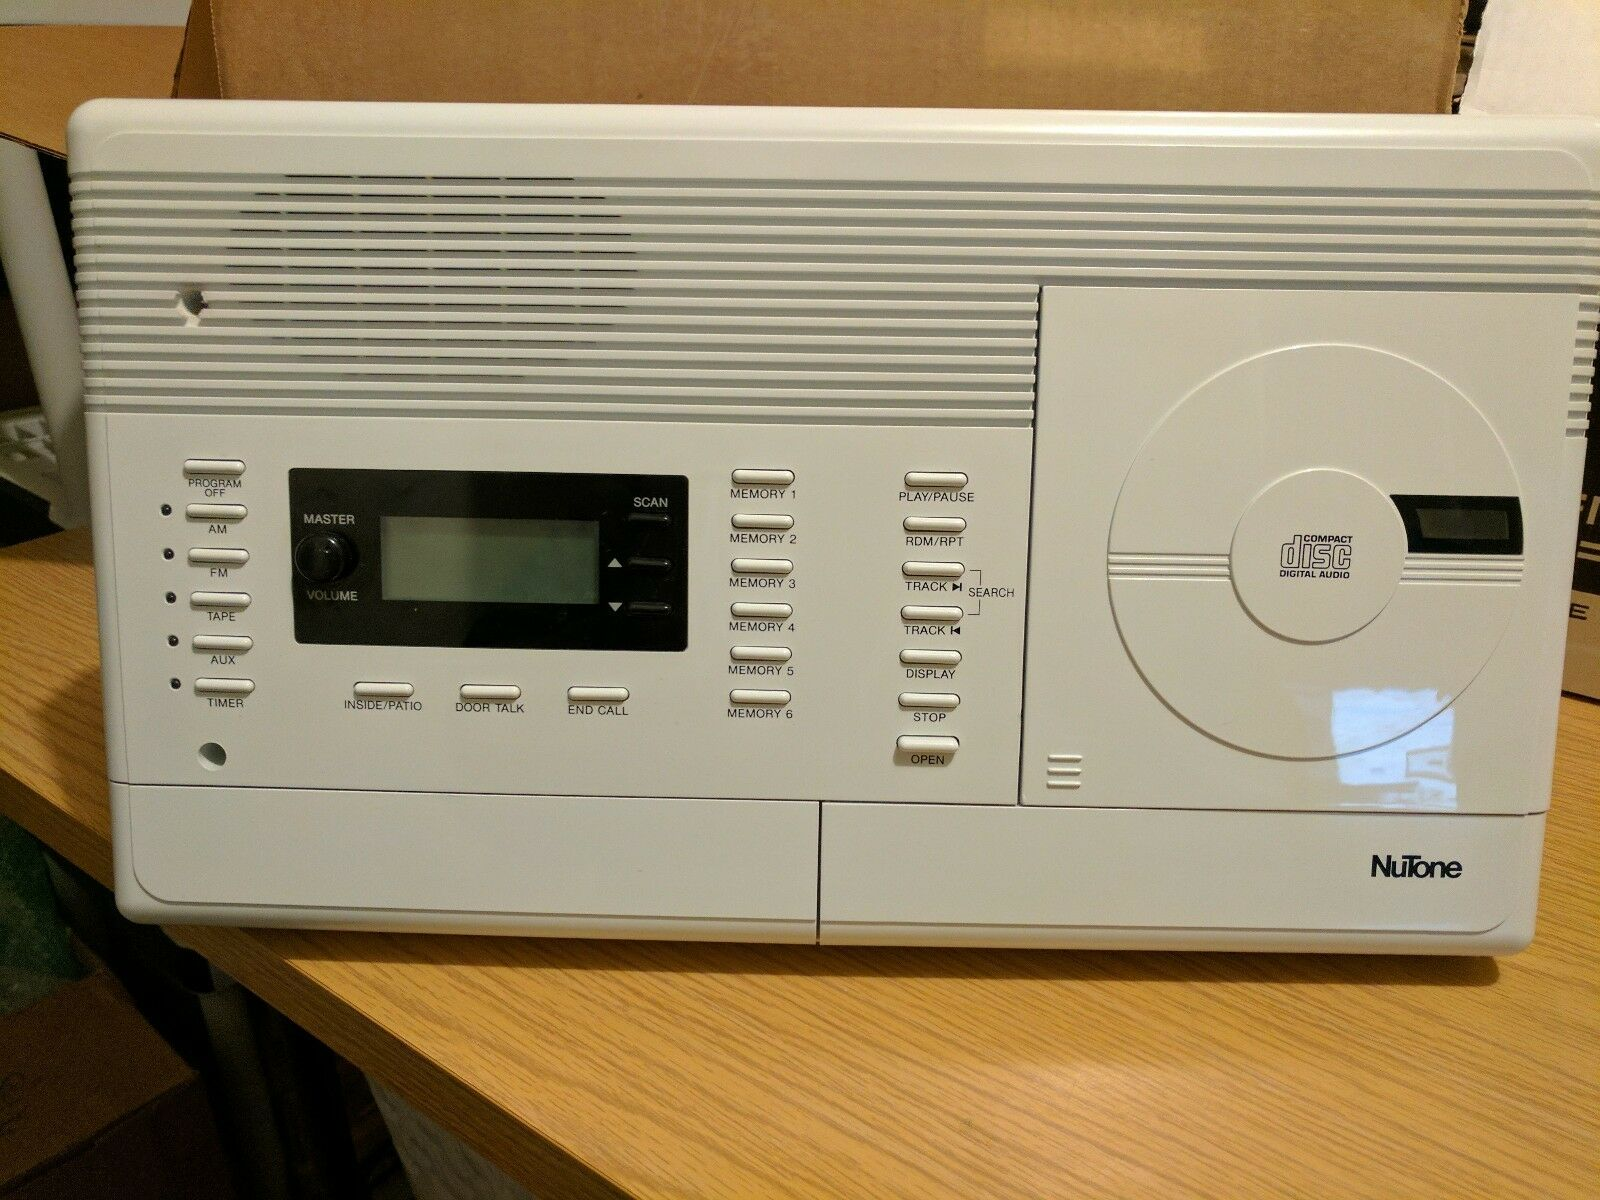 s l1600 nutone master station intercoms & access controls ebay nutone im 4006 wiring diagram at cos-gaming.co